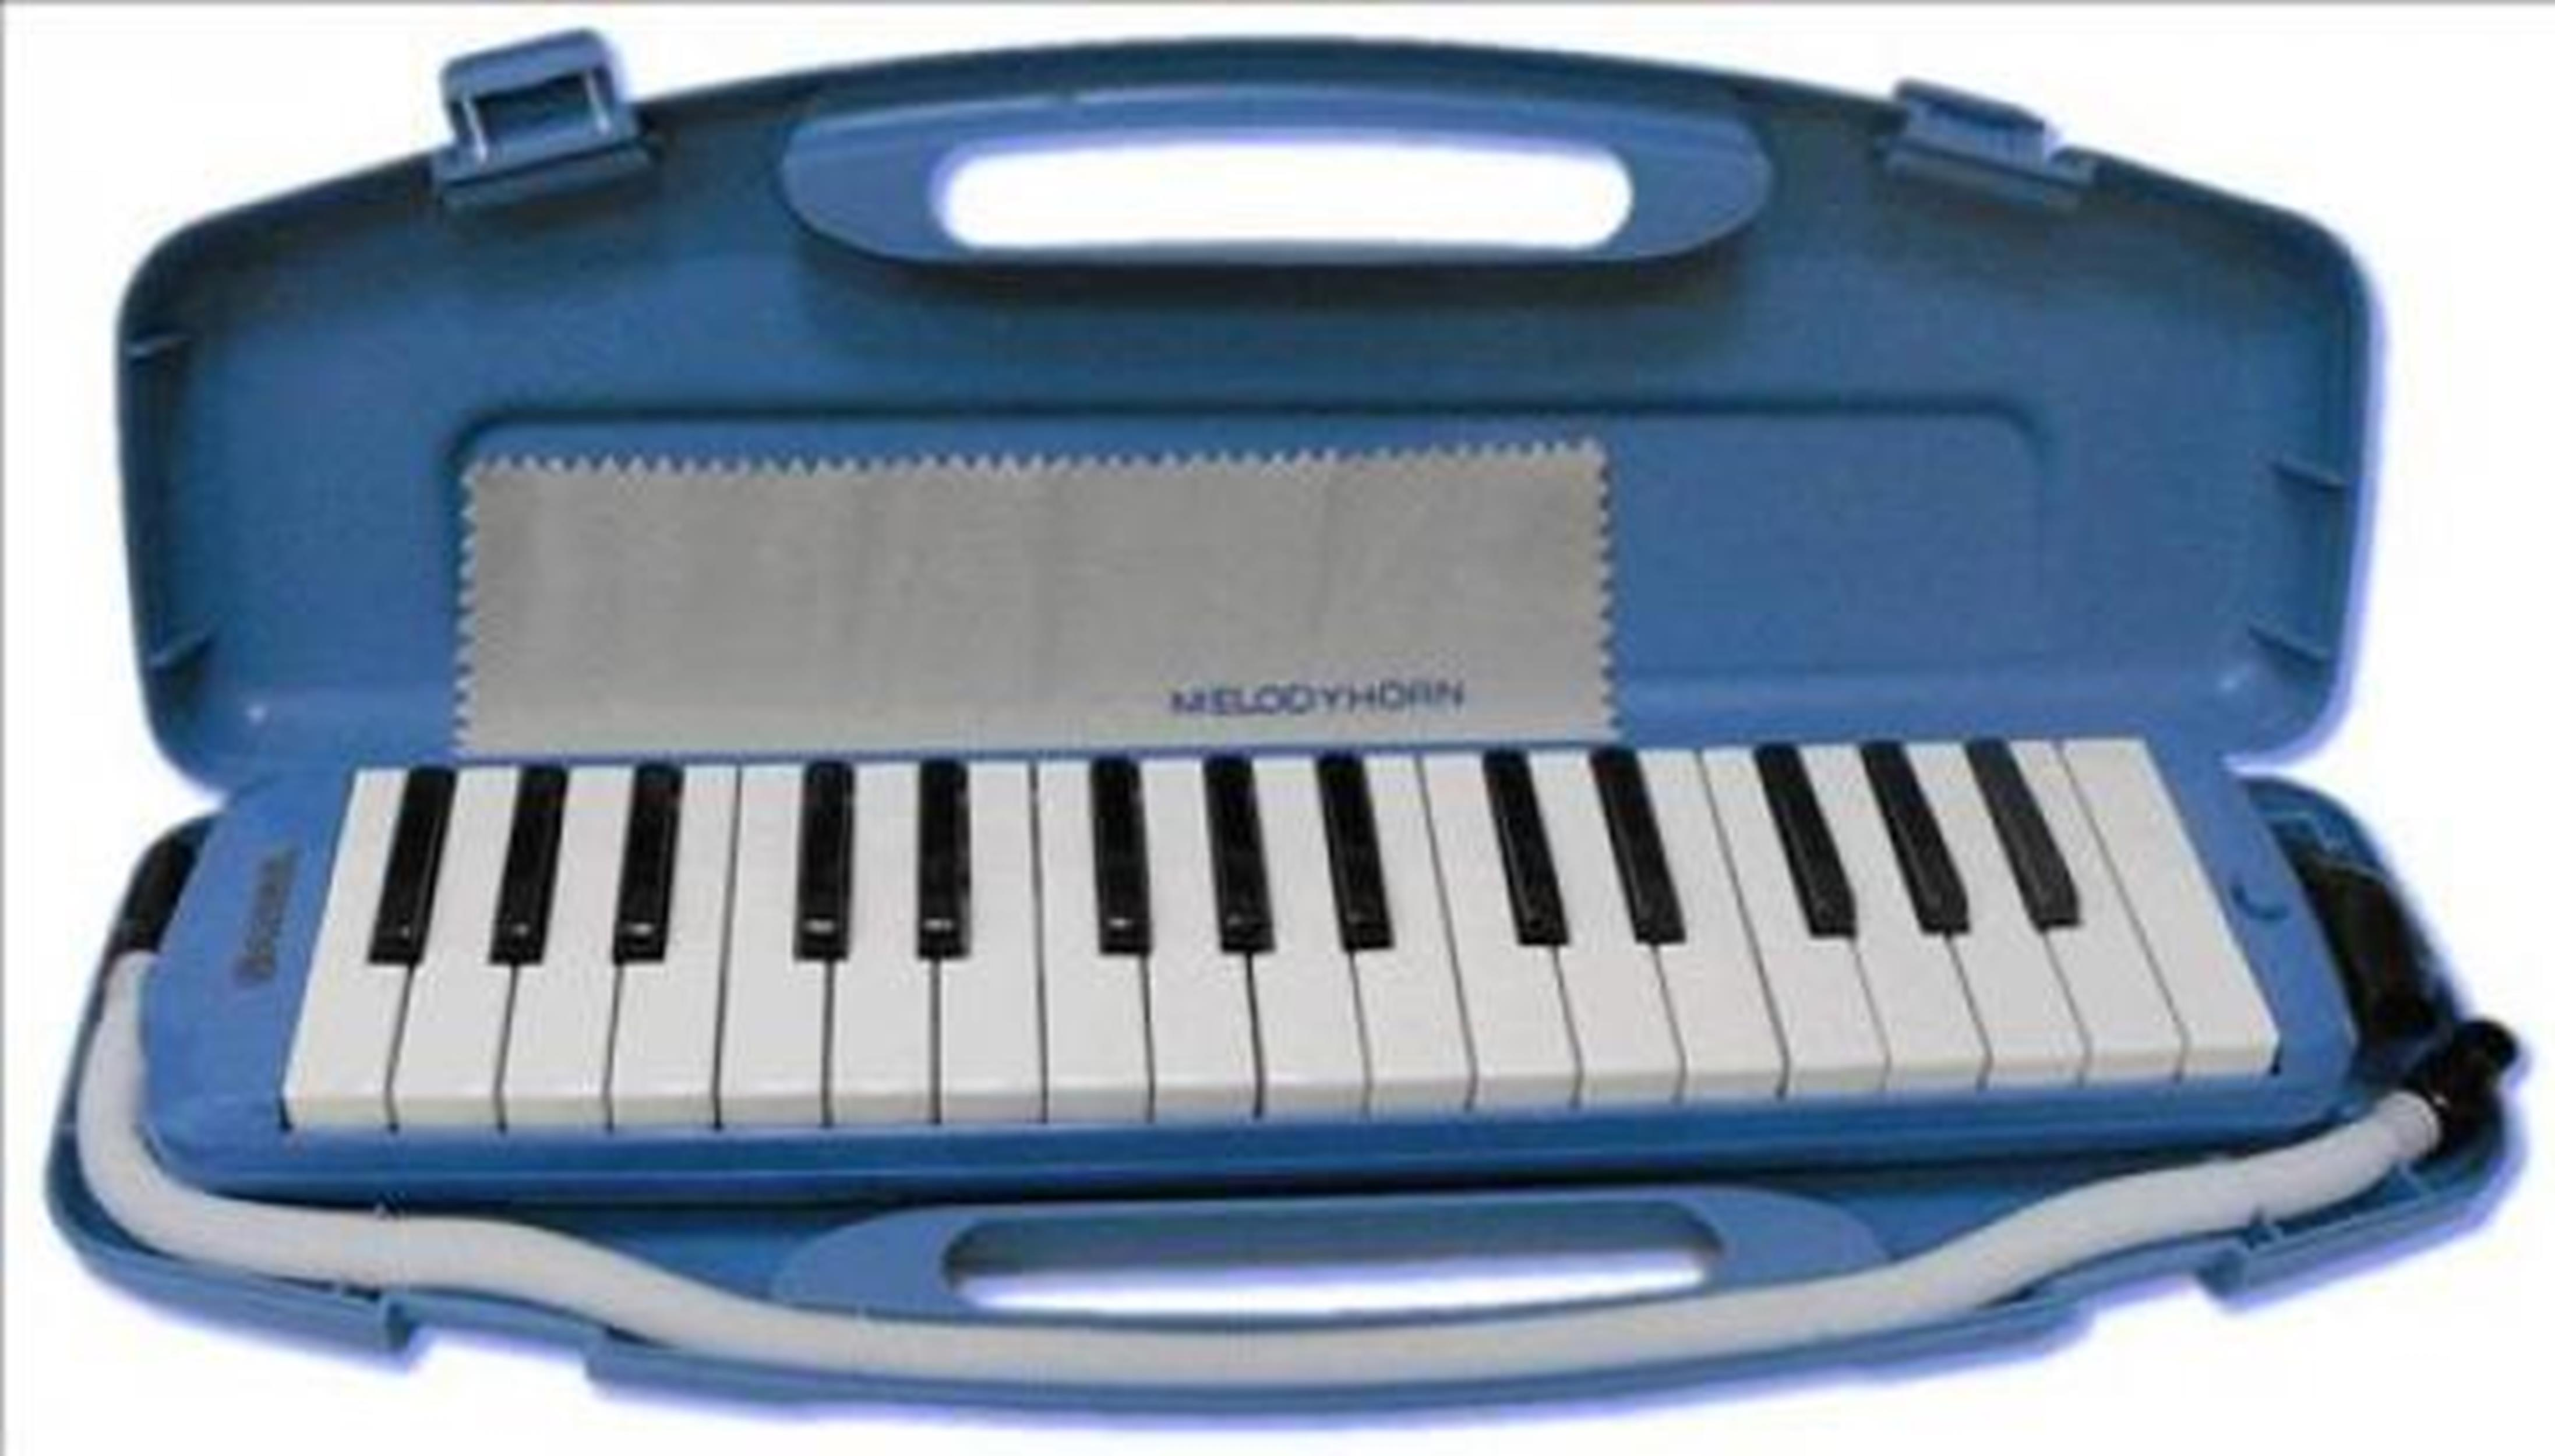 ANGEL-AM-32K3-MELODICA-DIDATTICA-sku-10690